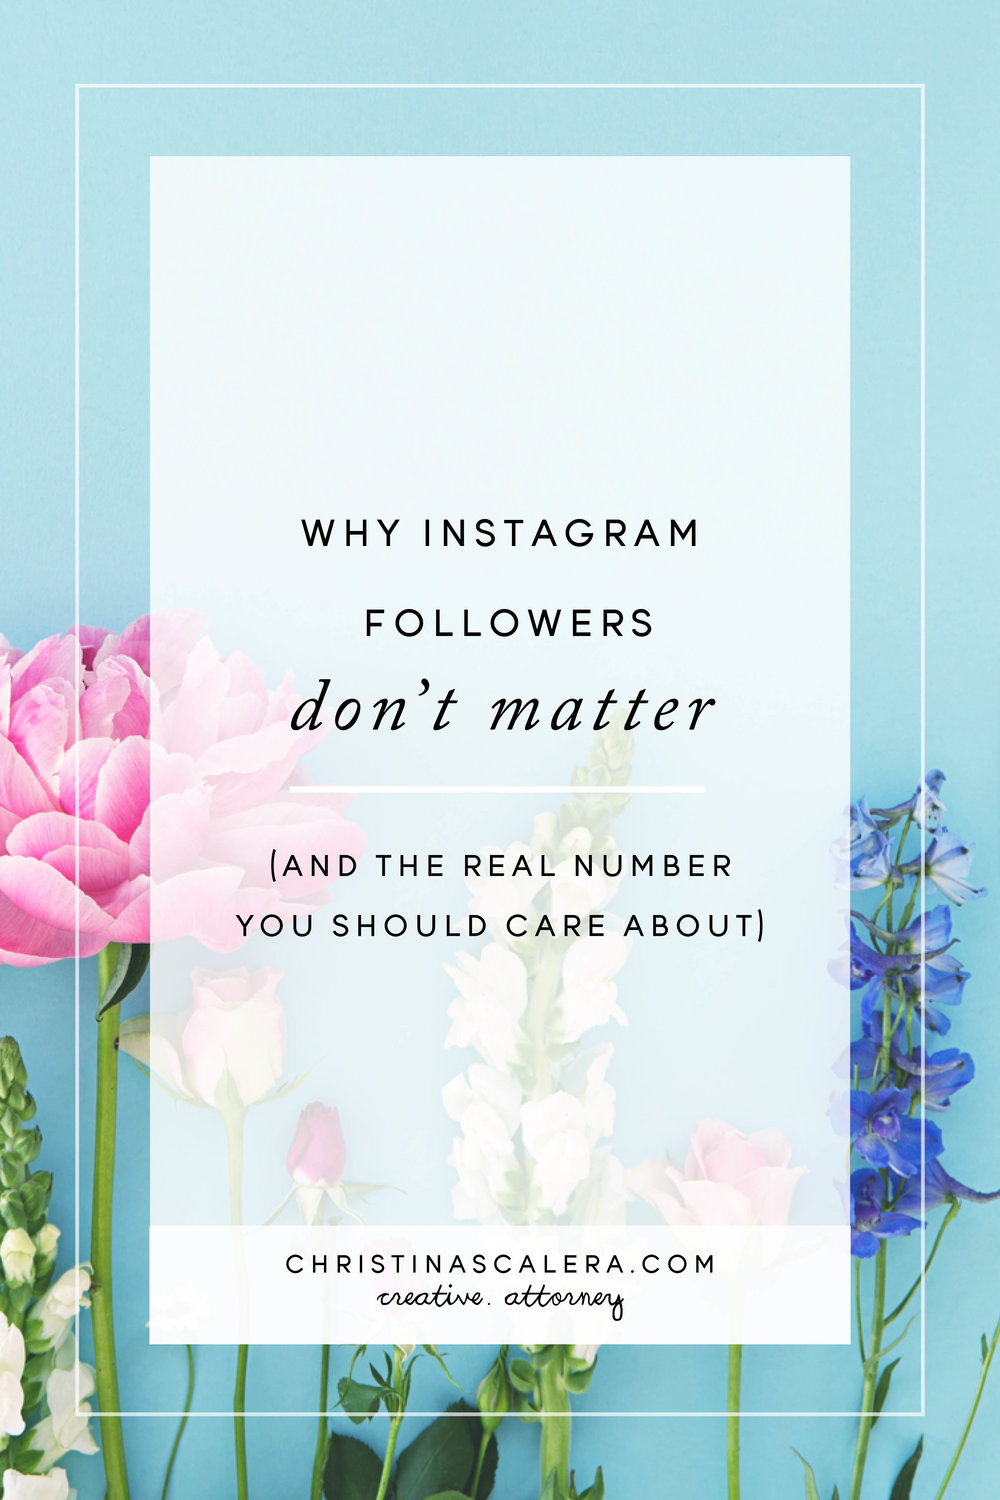 Why Instagram followers don't matter and the real number that you should care about!